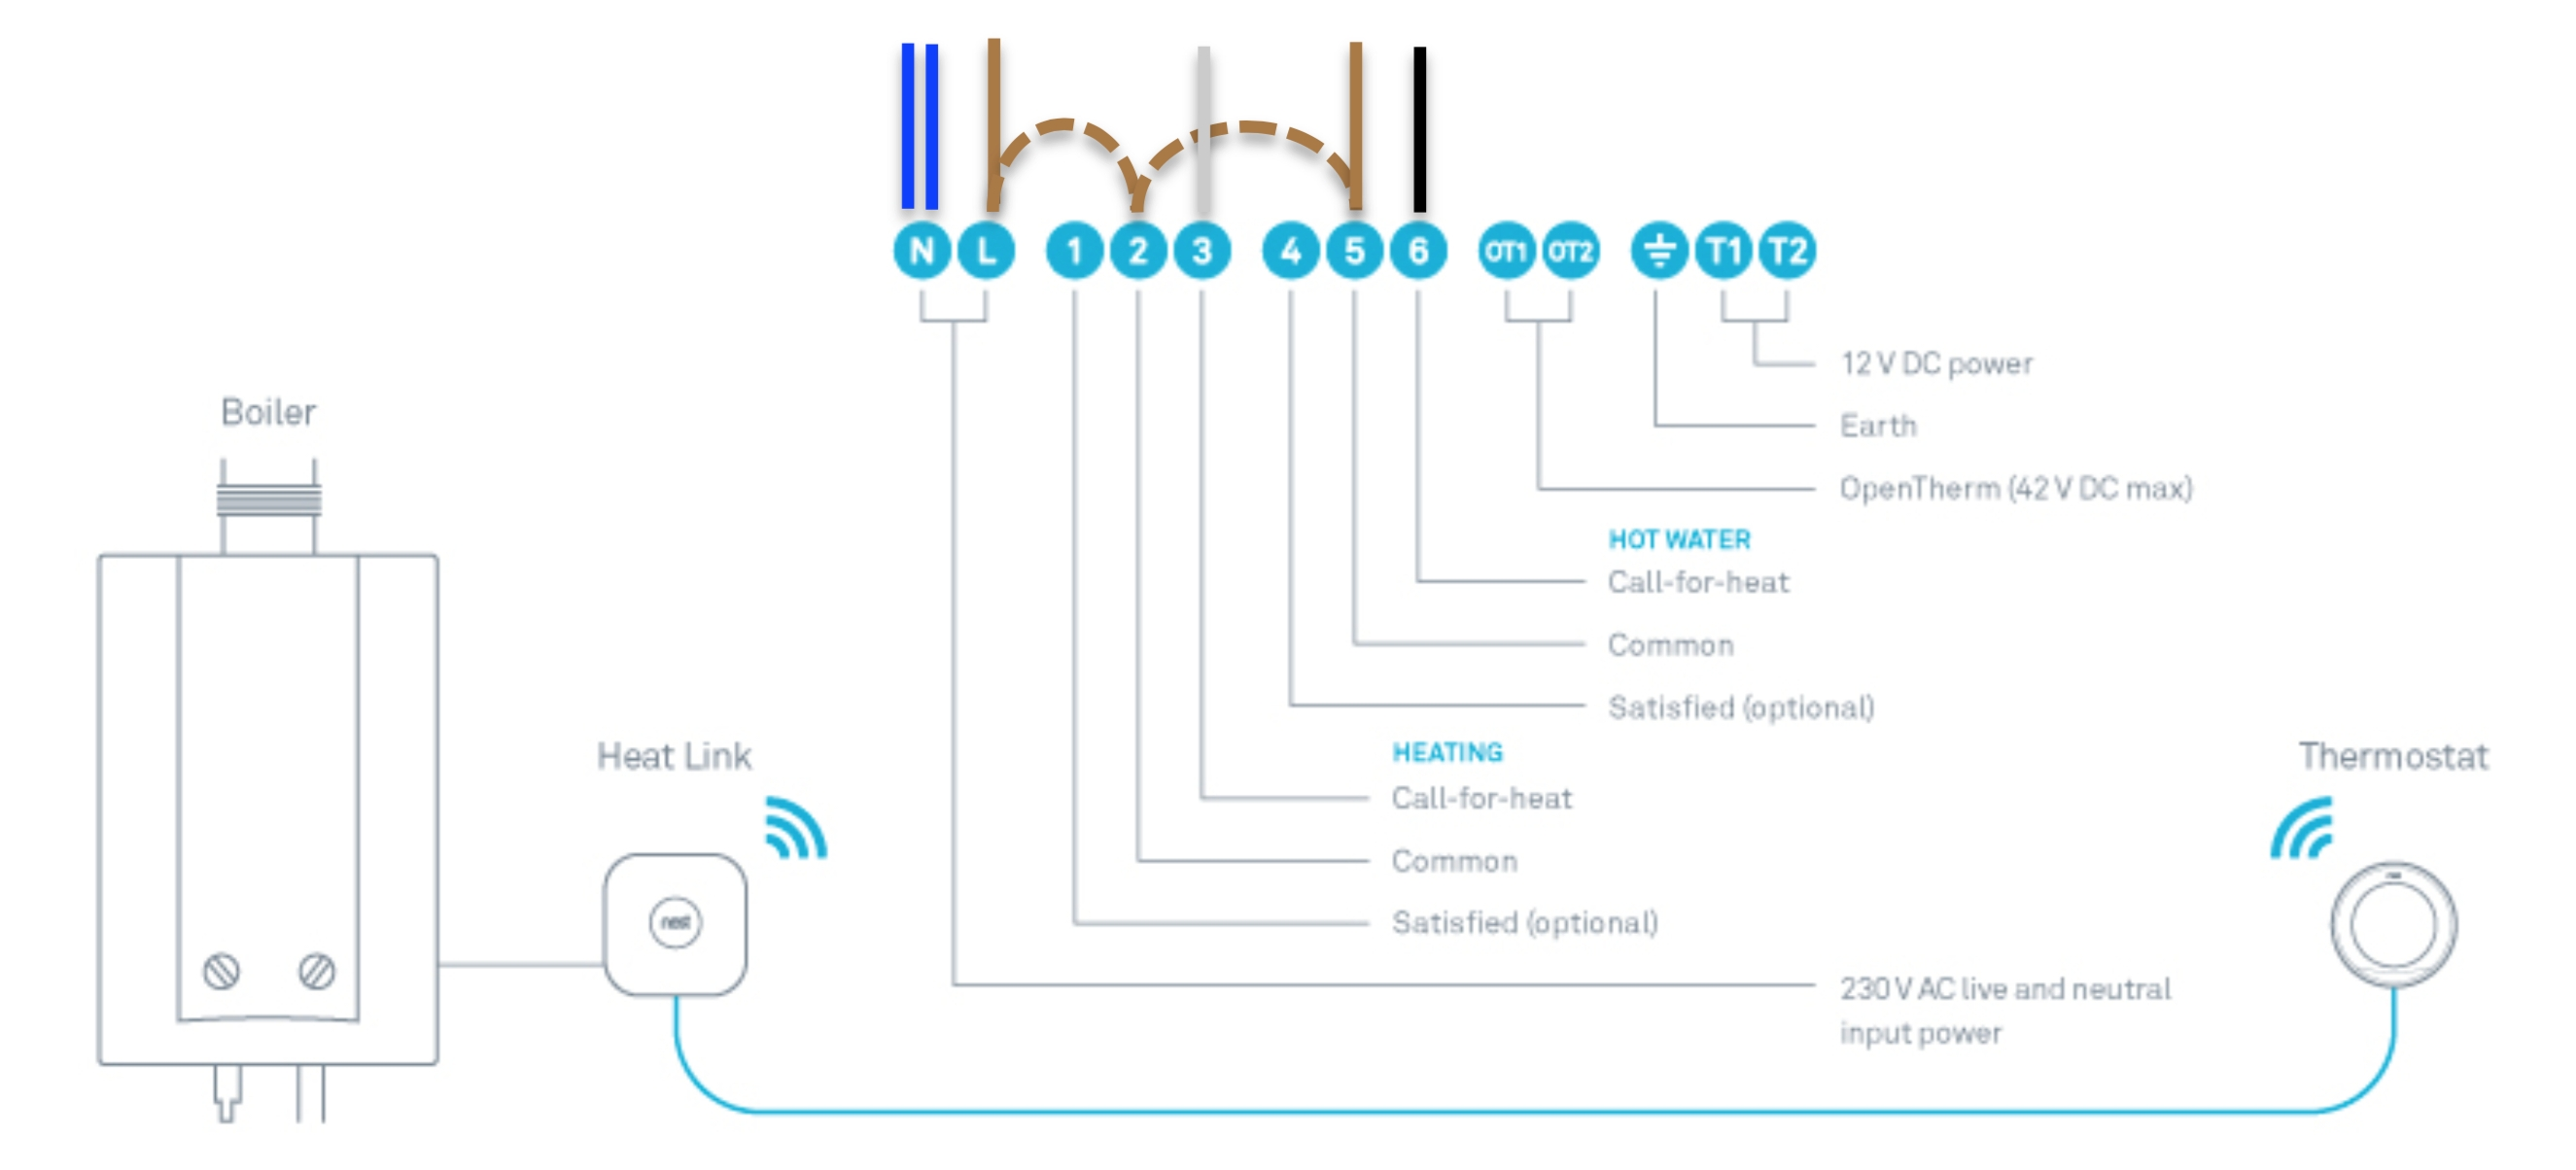 nest 3rd generation wiring diagram uk Download-New House Old Tech Replacing a Danfoss TP9000 with a Nest 3rd gen 17-r